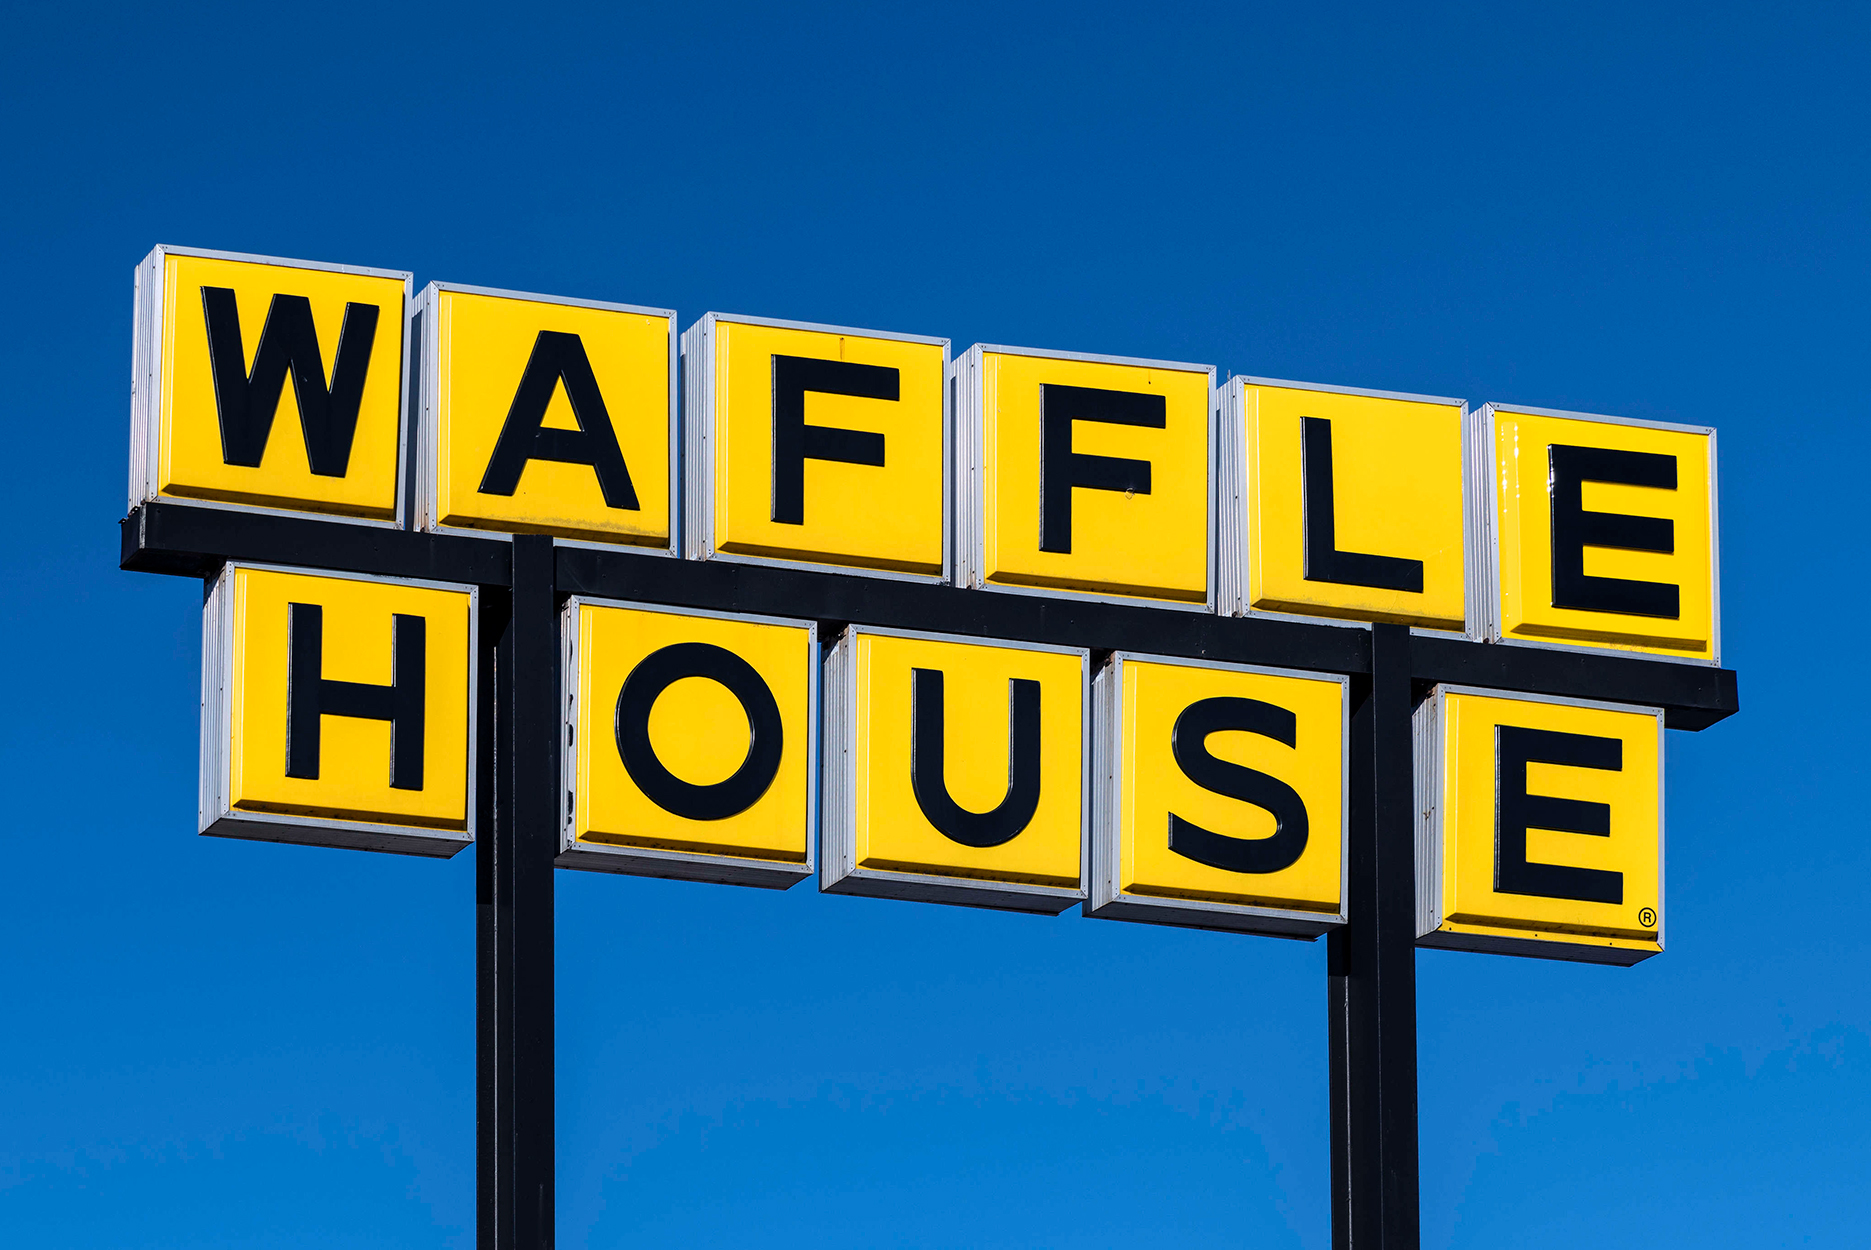 Waffle House is an American restaurant chain predominately